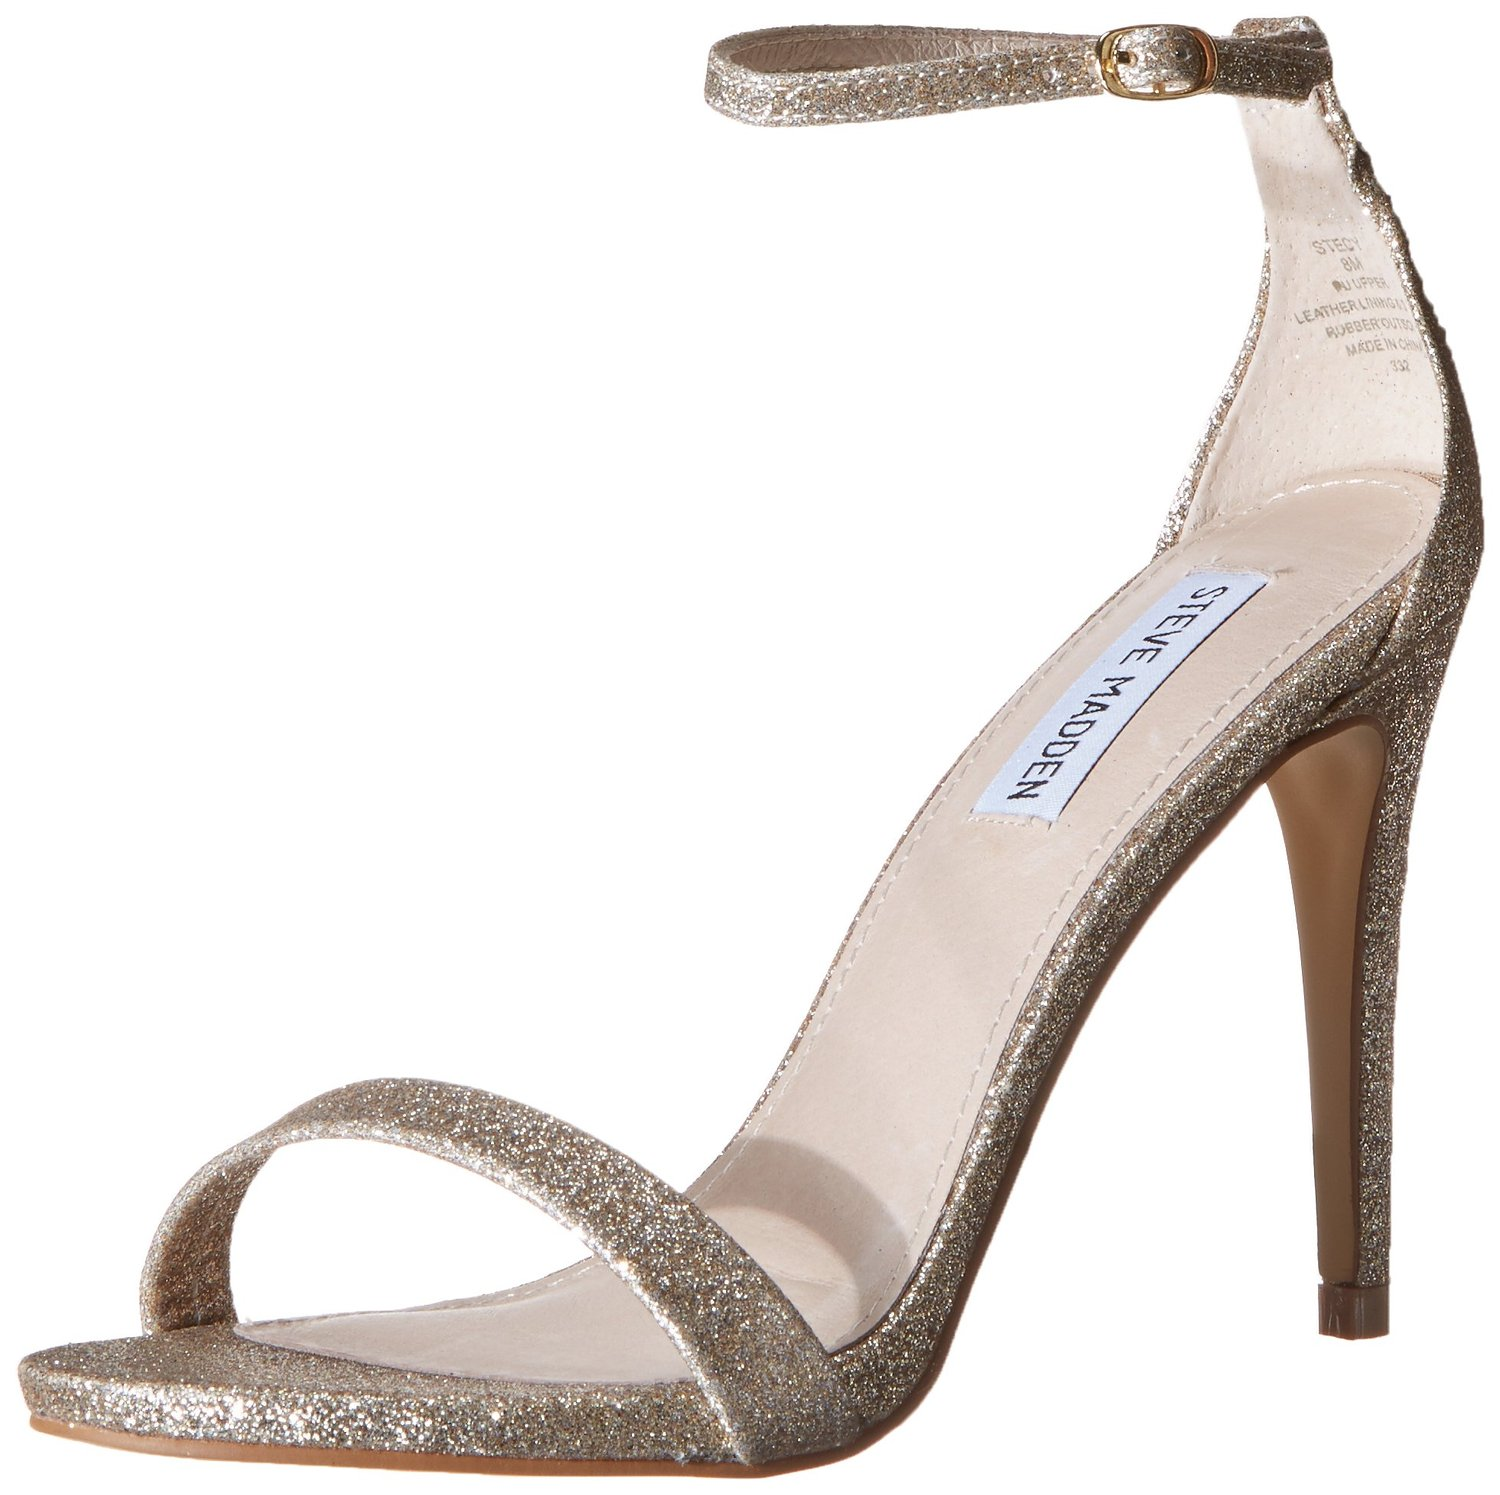 2ae1ce0622d Steve Madden Stecy Dress Sandal in Gold Glitter Color